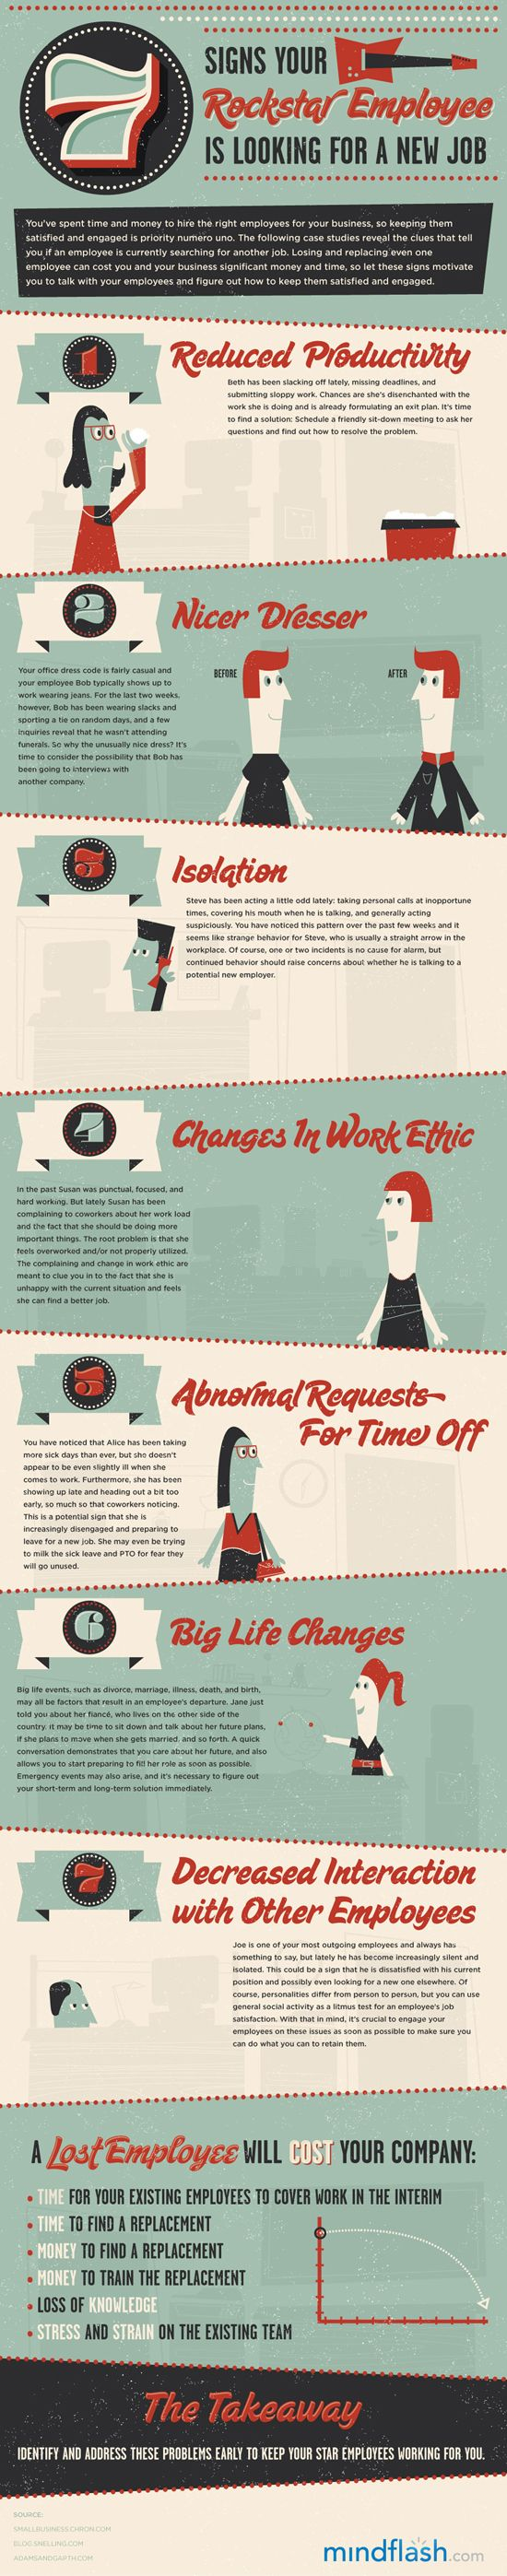 7 Signs Your Rockstar Employee Is Looking For A New Job [Infographic]